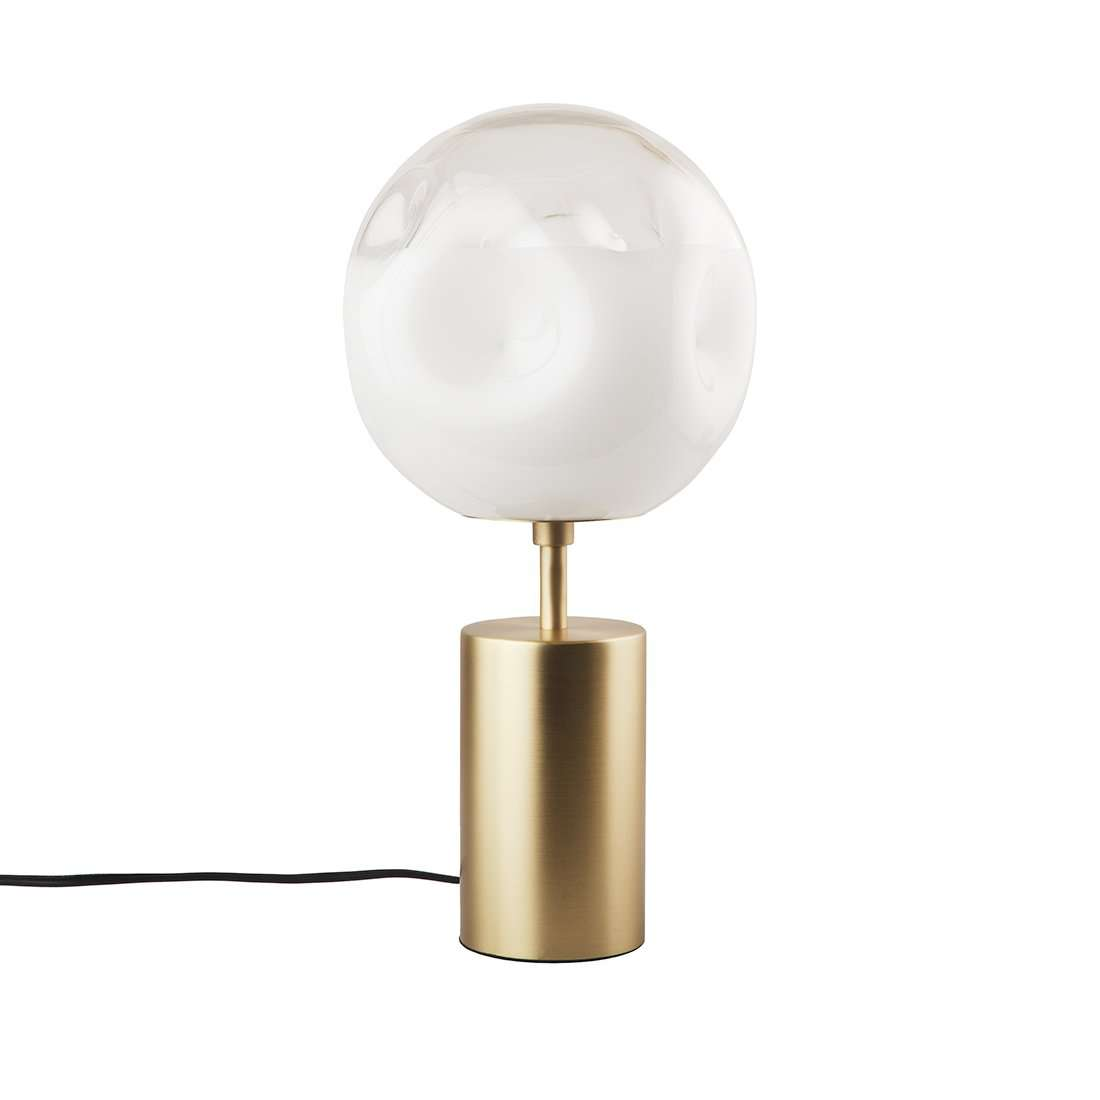 Melting Glass And Brass Table Lamp